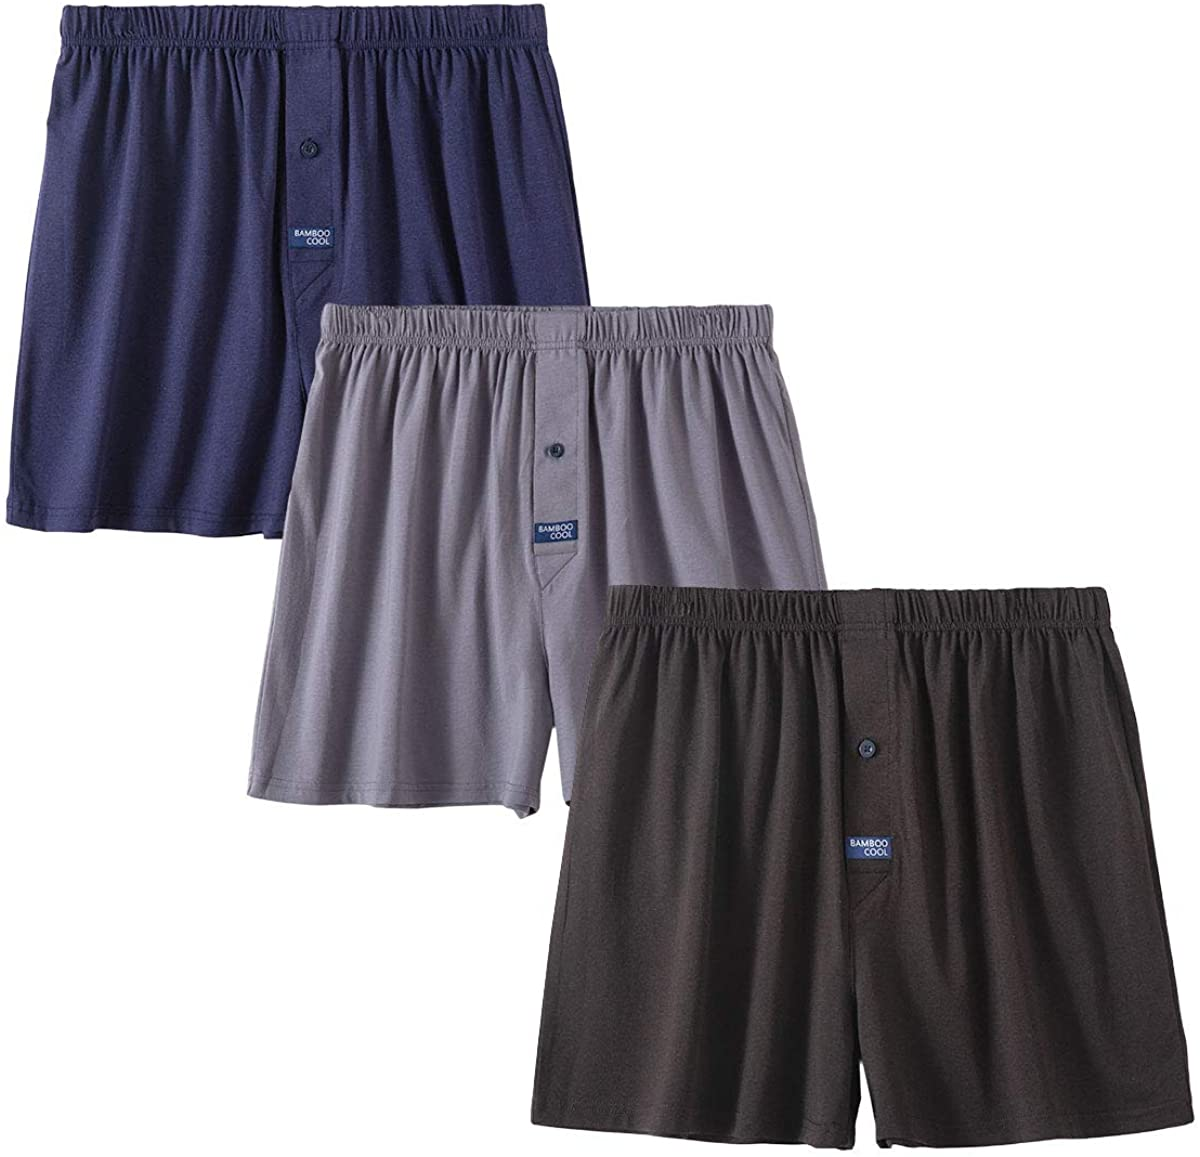 Men's Boxer Charlotte Mall Max 45% OFF Short 3-Pack Bamboo Boxers for Relaxed F Men Classic